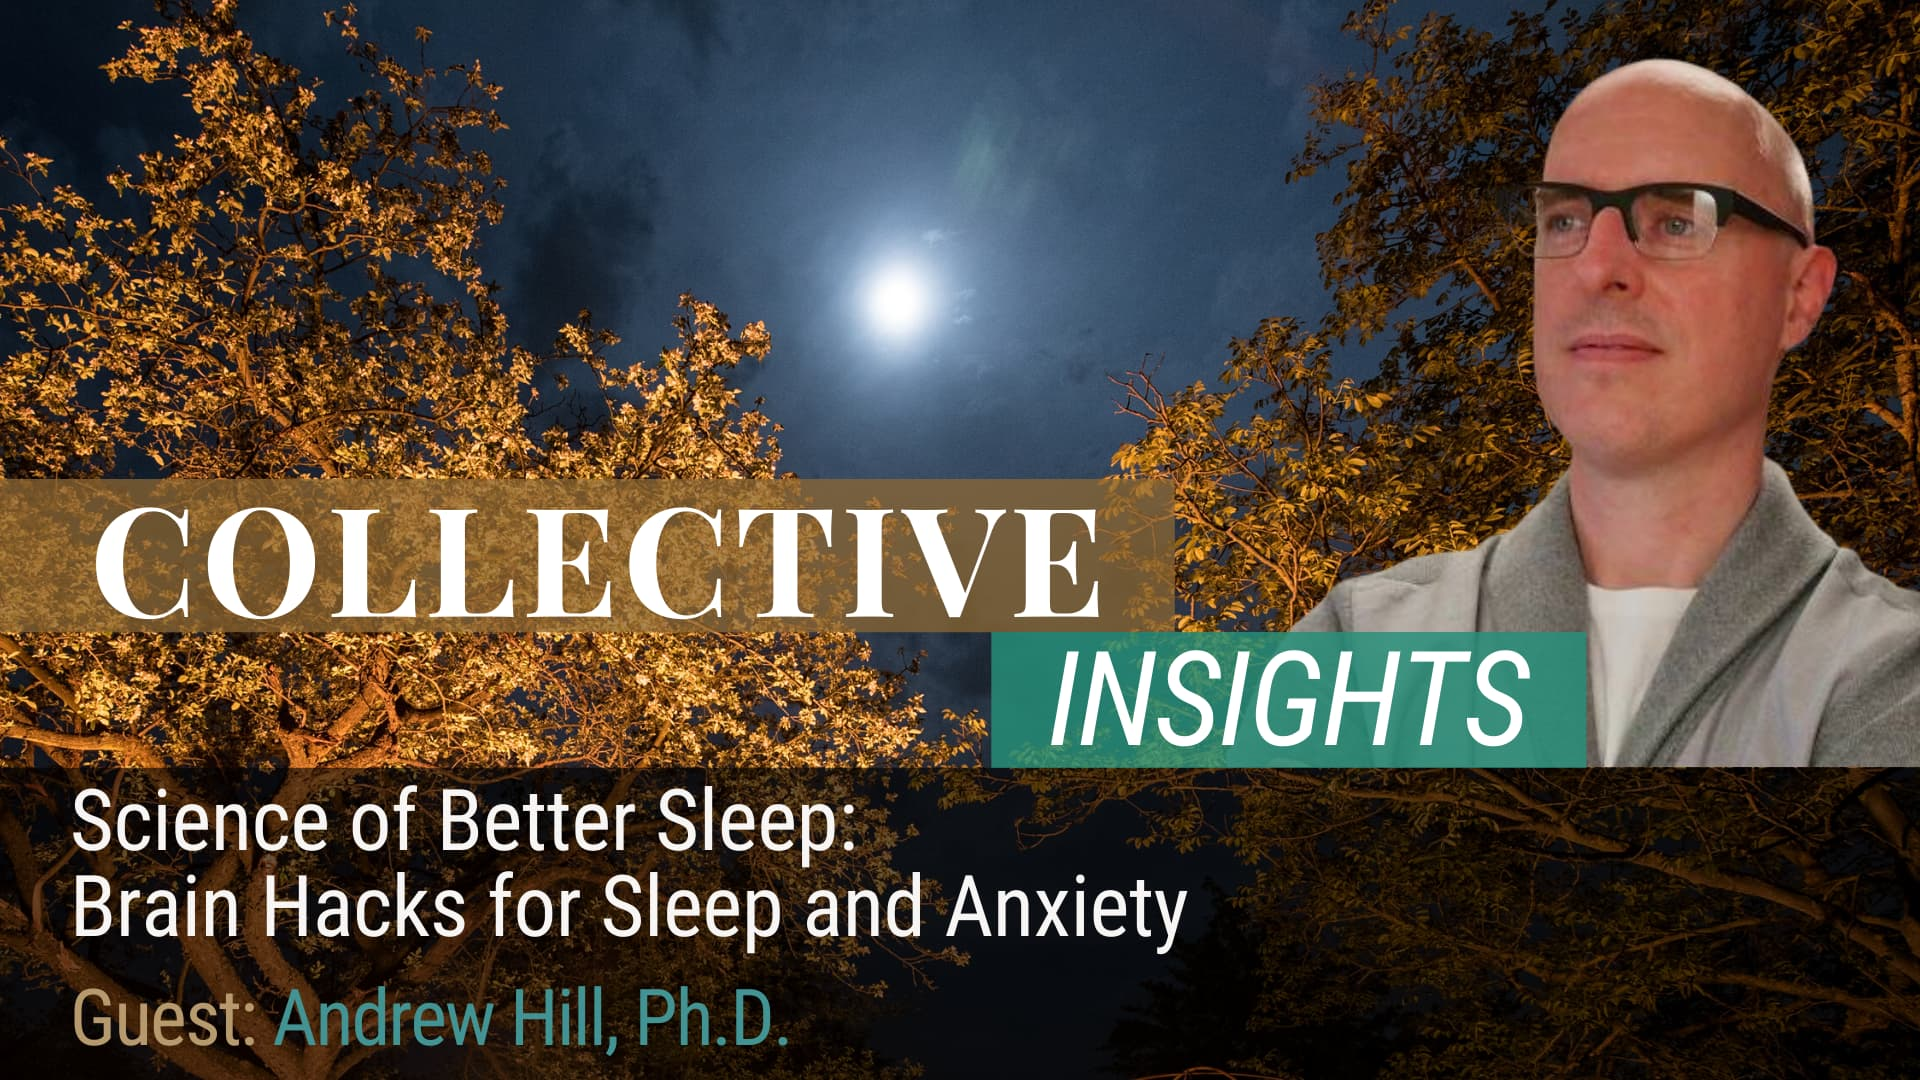 The Science of Better Sleep: Brain Hacks for Sleep and Anxiety